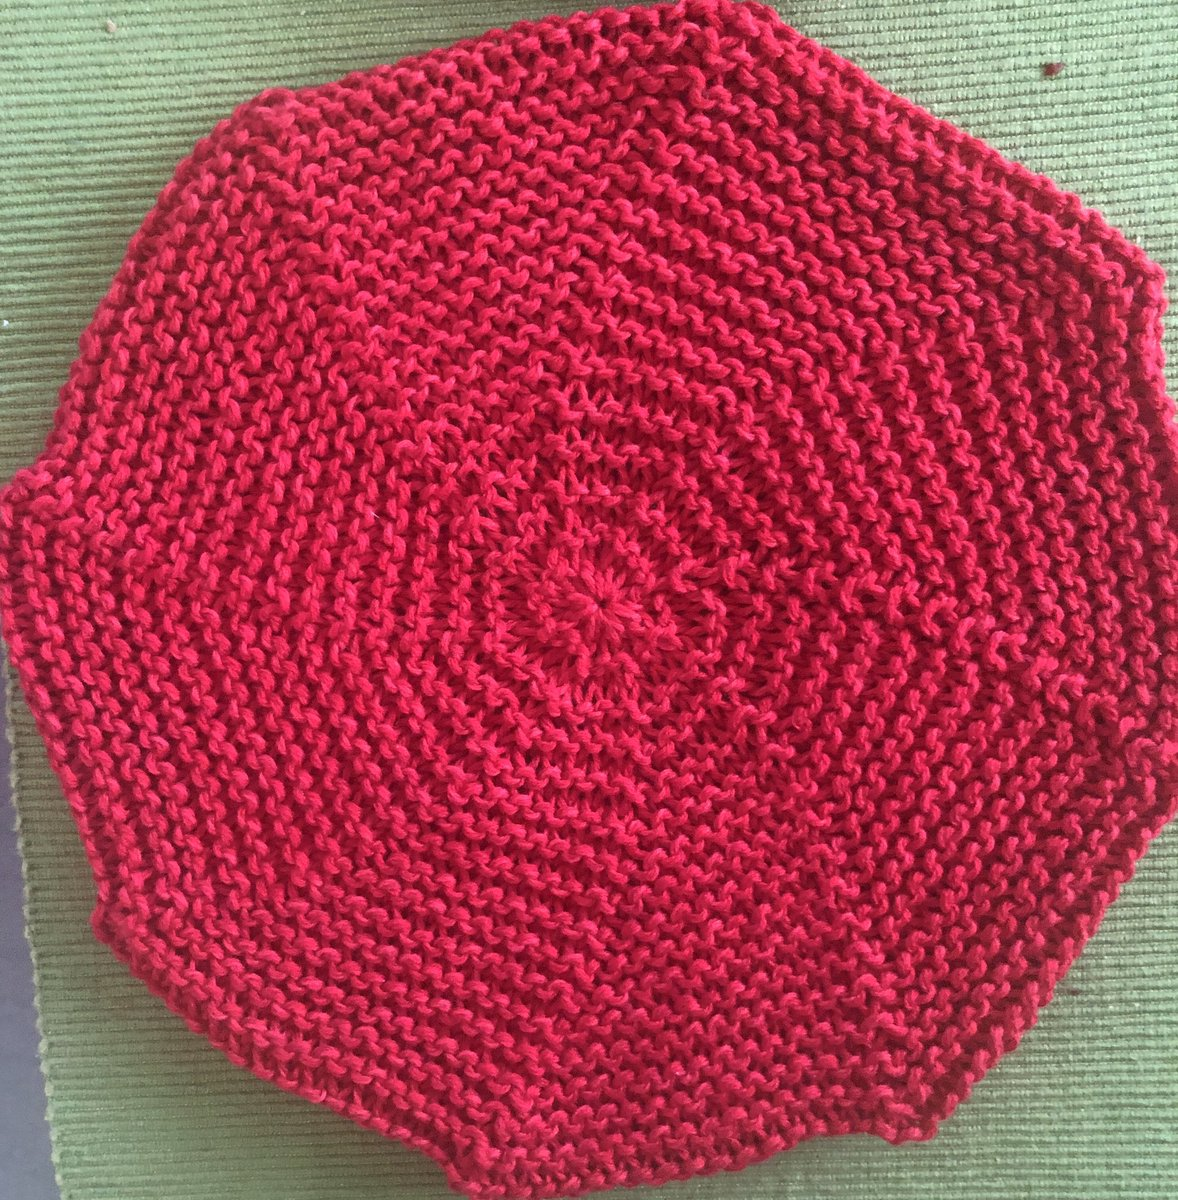 Twitter break! Love you all♥️  Please help build @WholeWashington and order a red beret if you want to help! I'll be knitting🧶💯🍎  #MedicareForAll